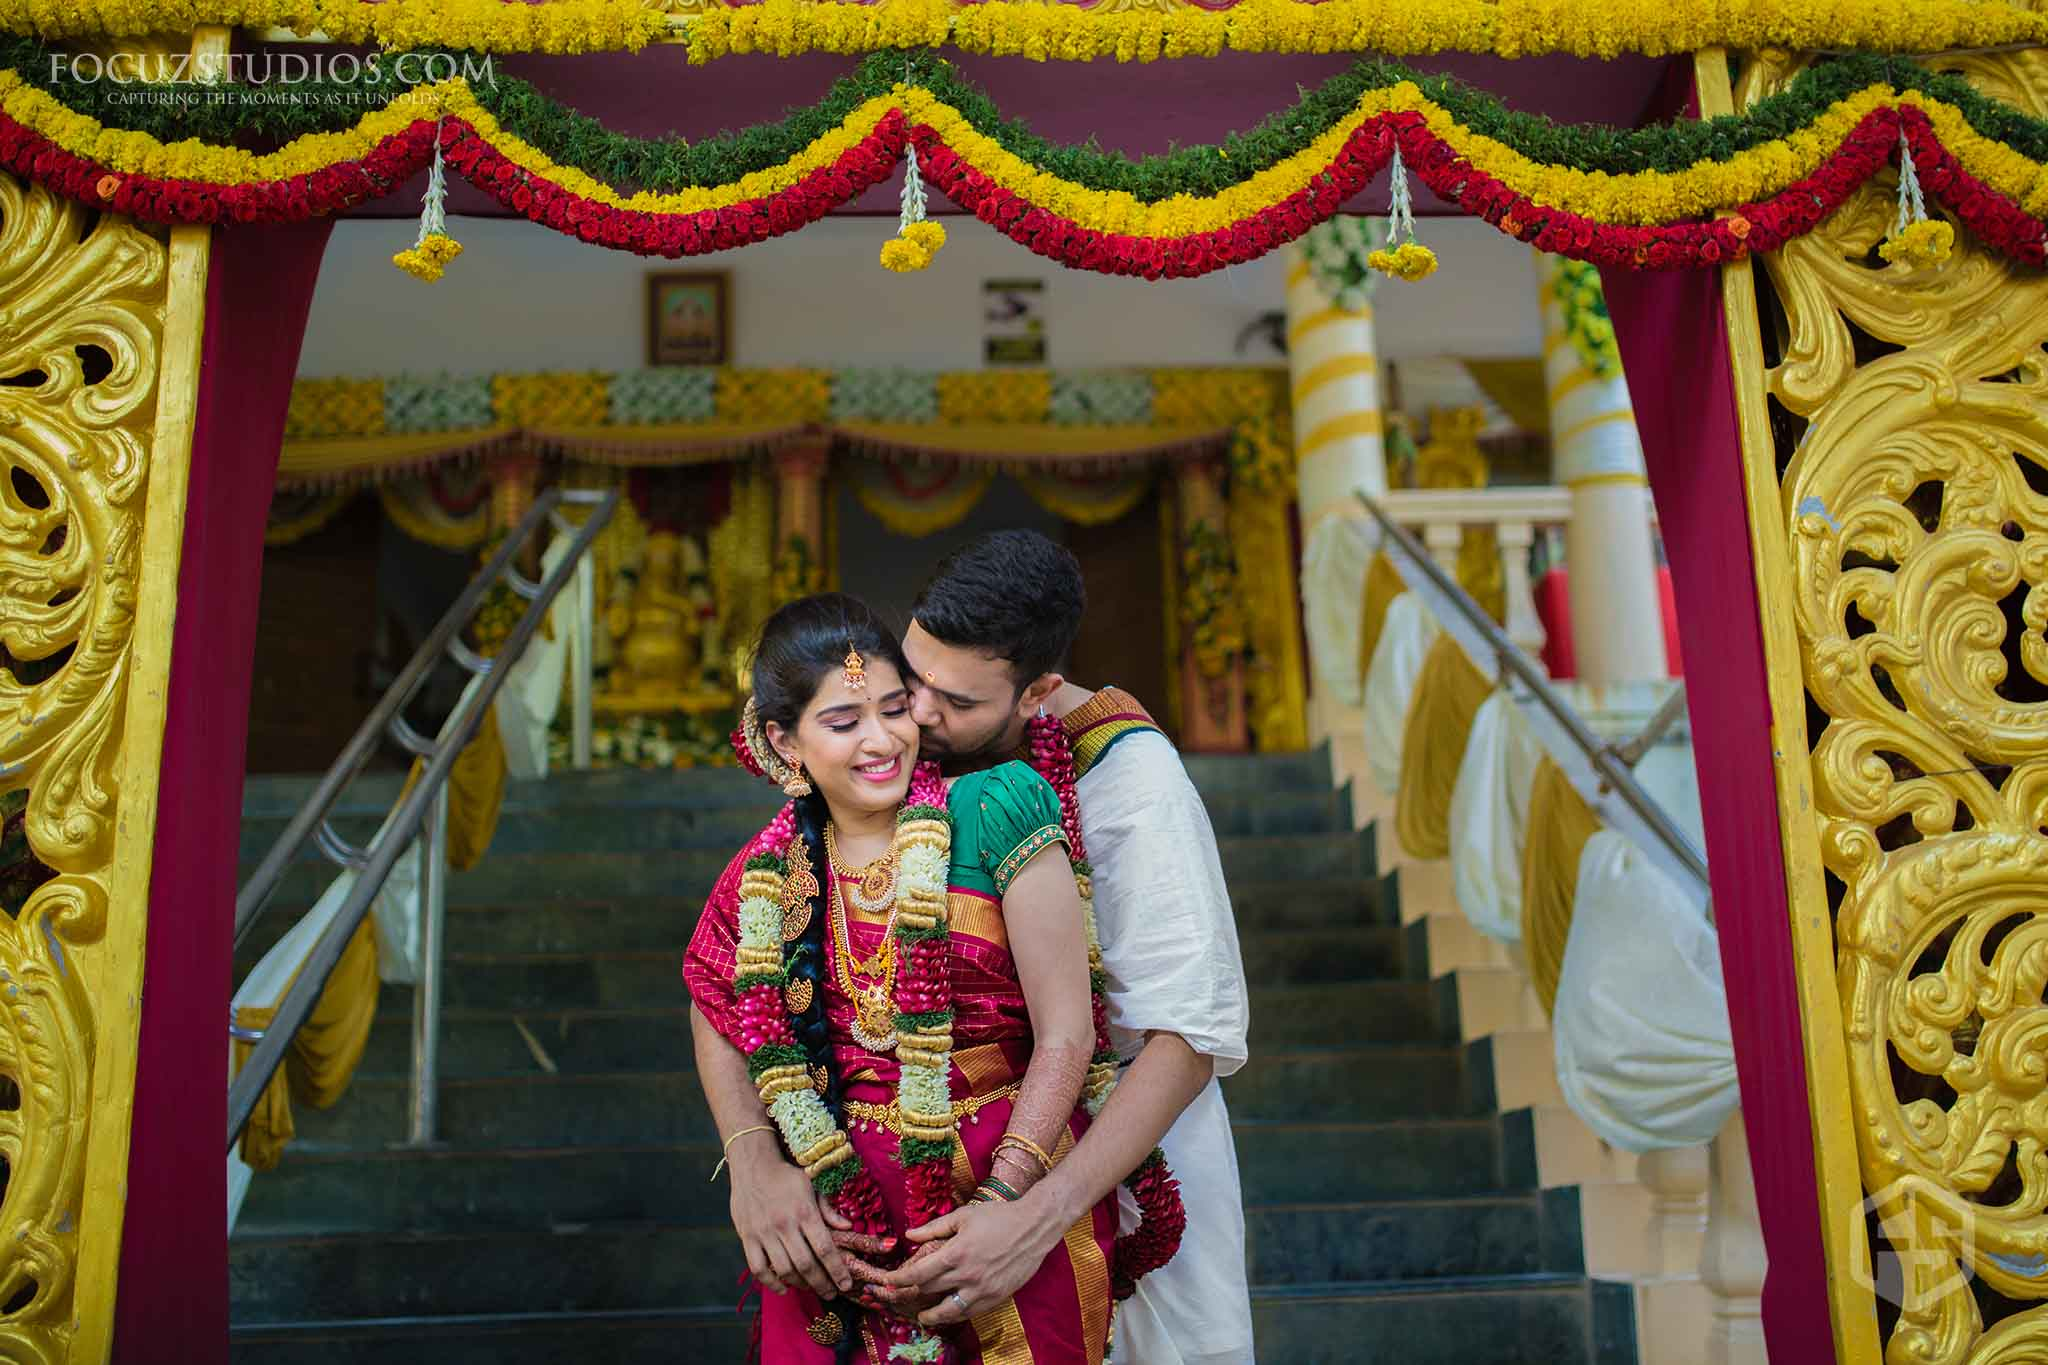 brahmin-wedding-photographers-focuz-studios12